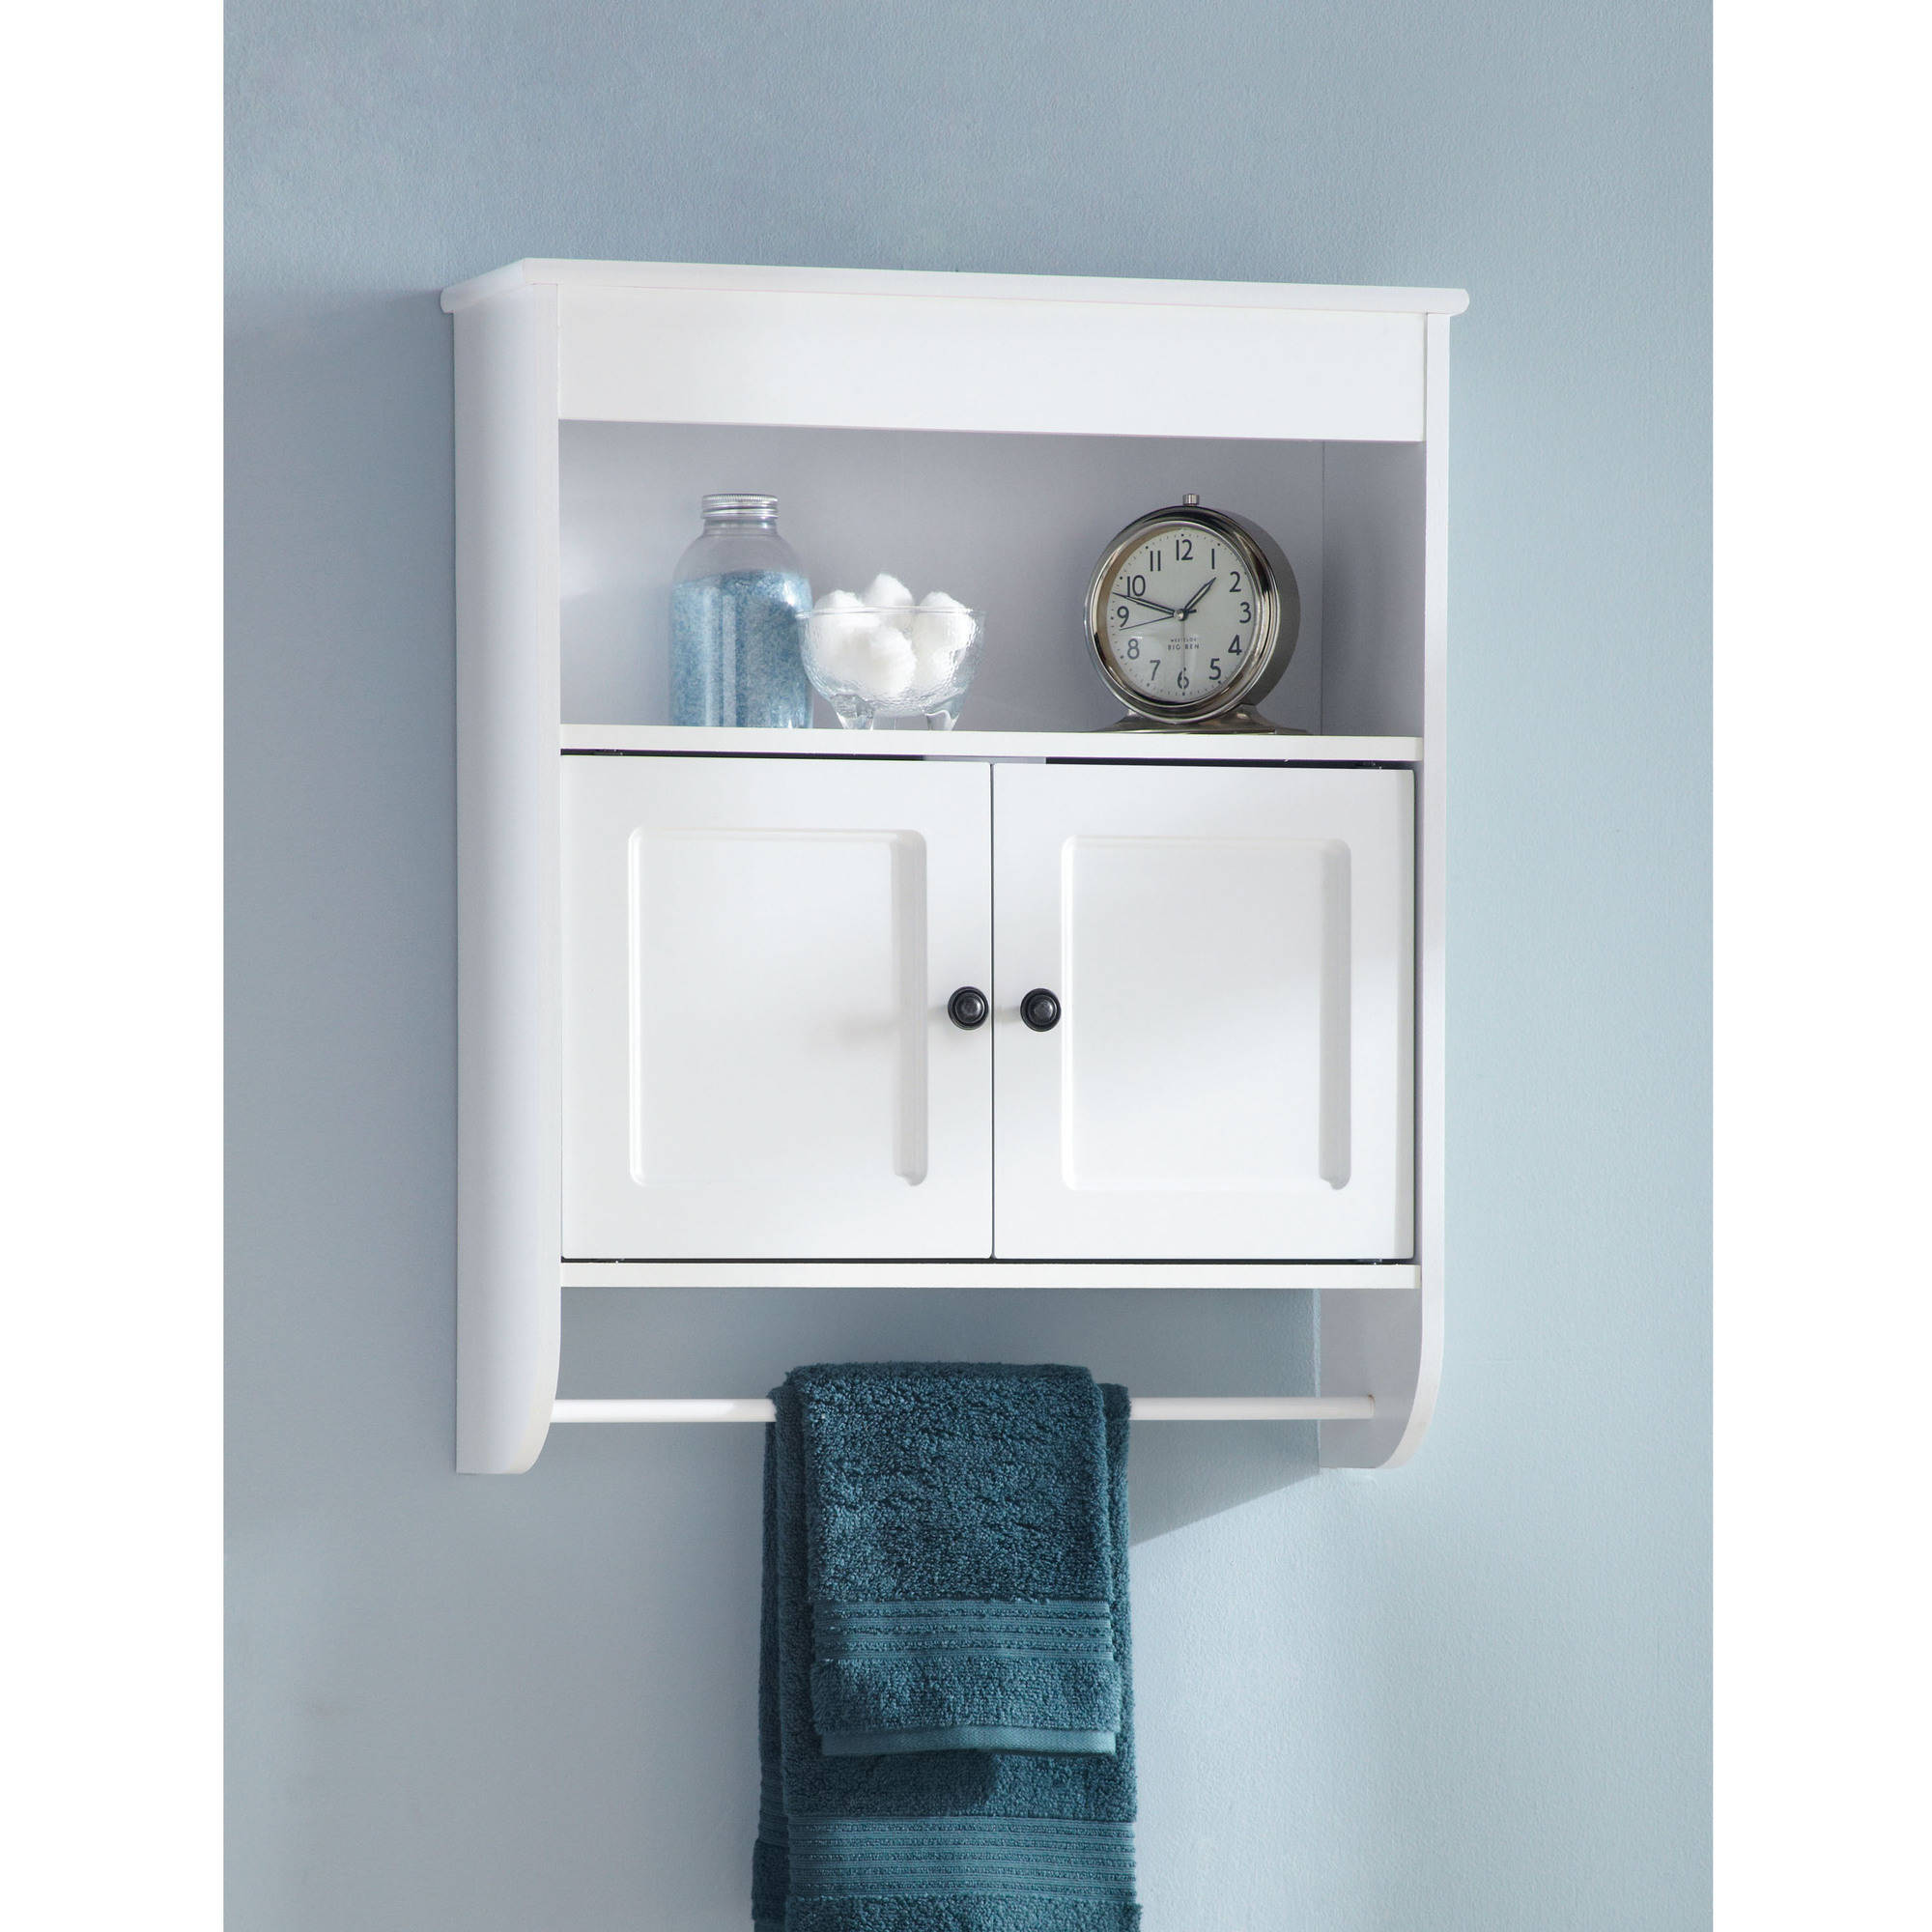 Bathroom Wall Cabinets hawthorne place wood wall cabinet, white - walmart